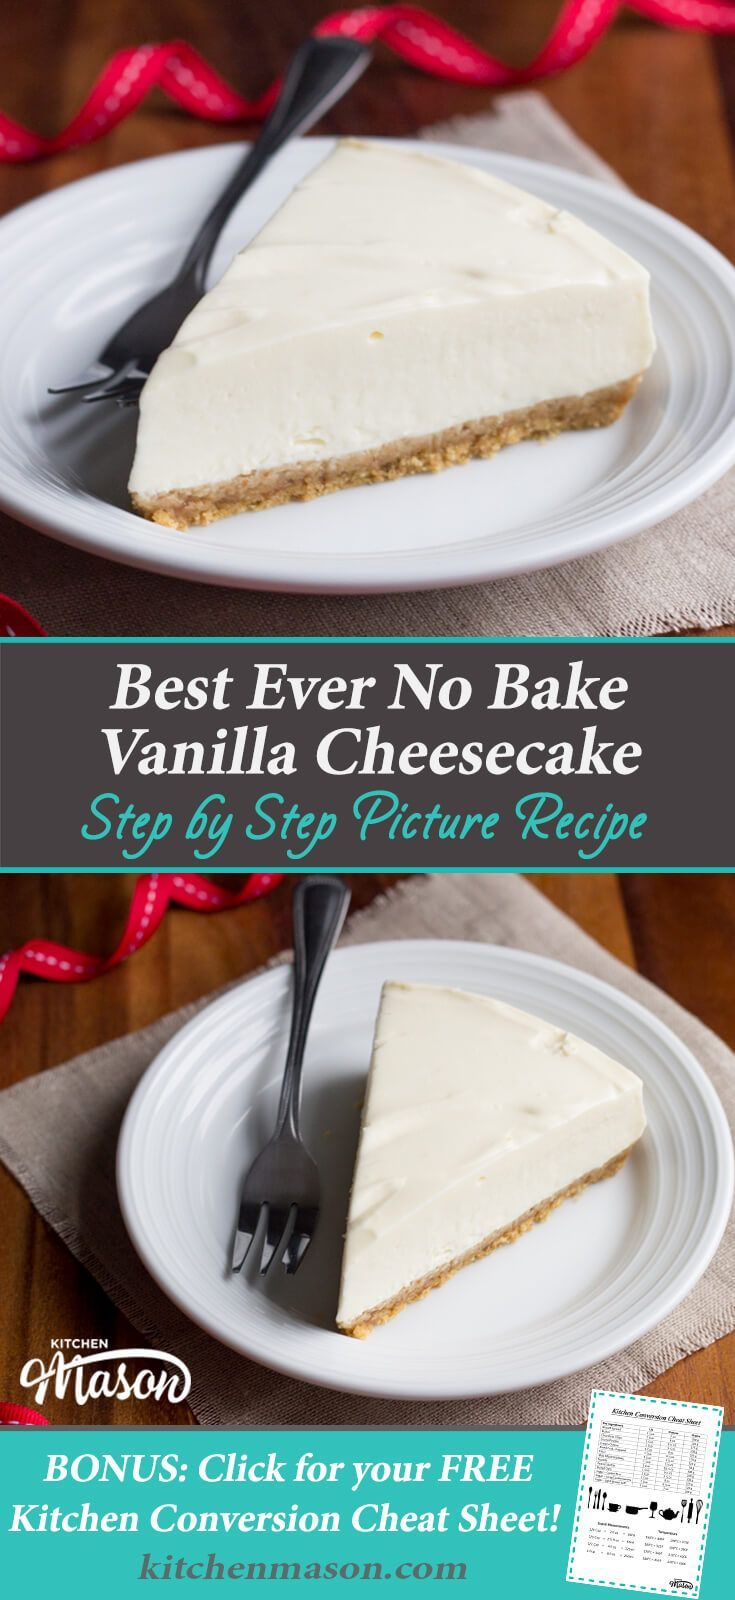 Creamy, light & incredibly luxurious - this No Bake Vanilla Cheesecake is the best EVER!